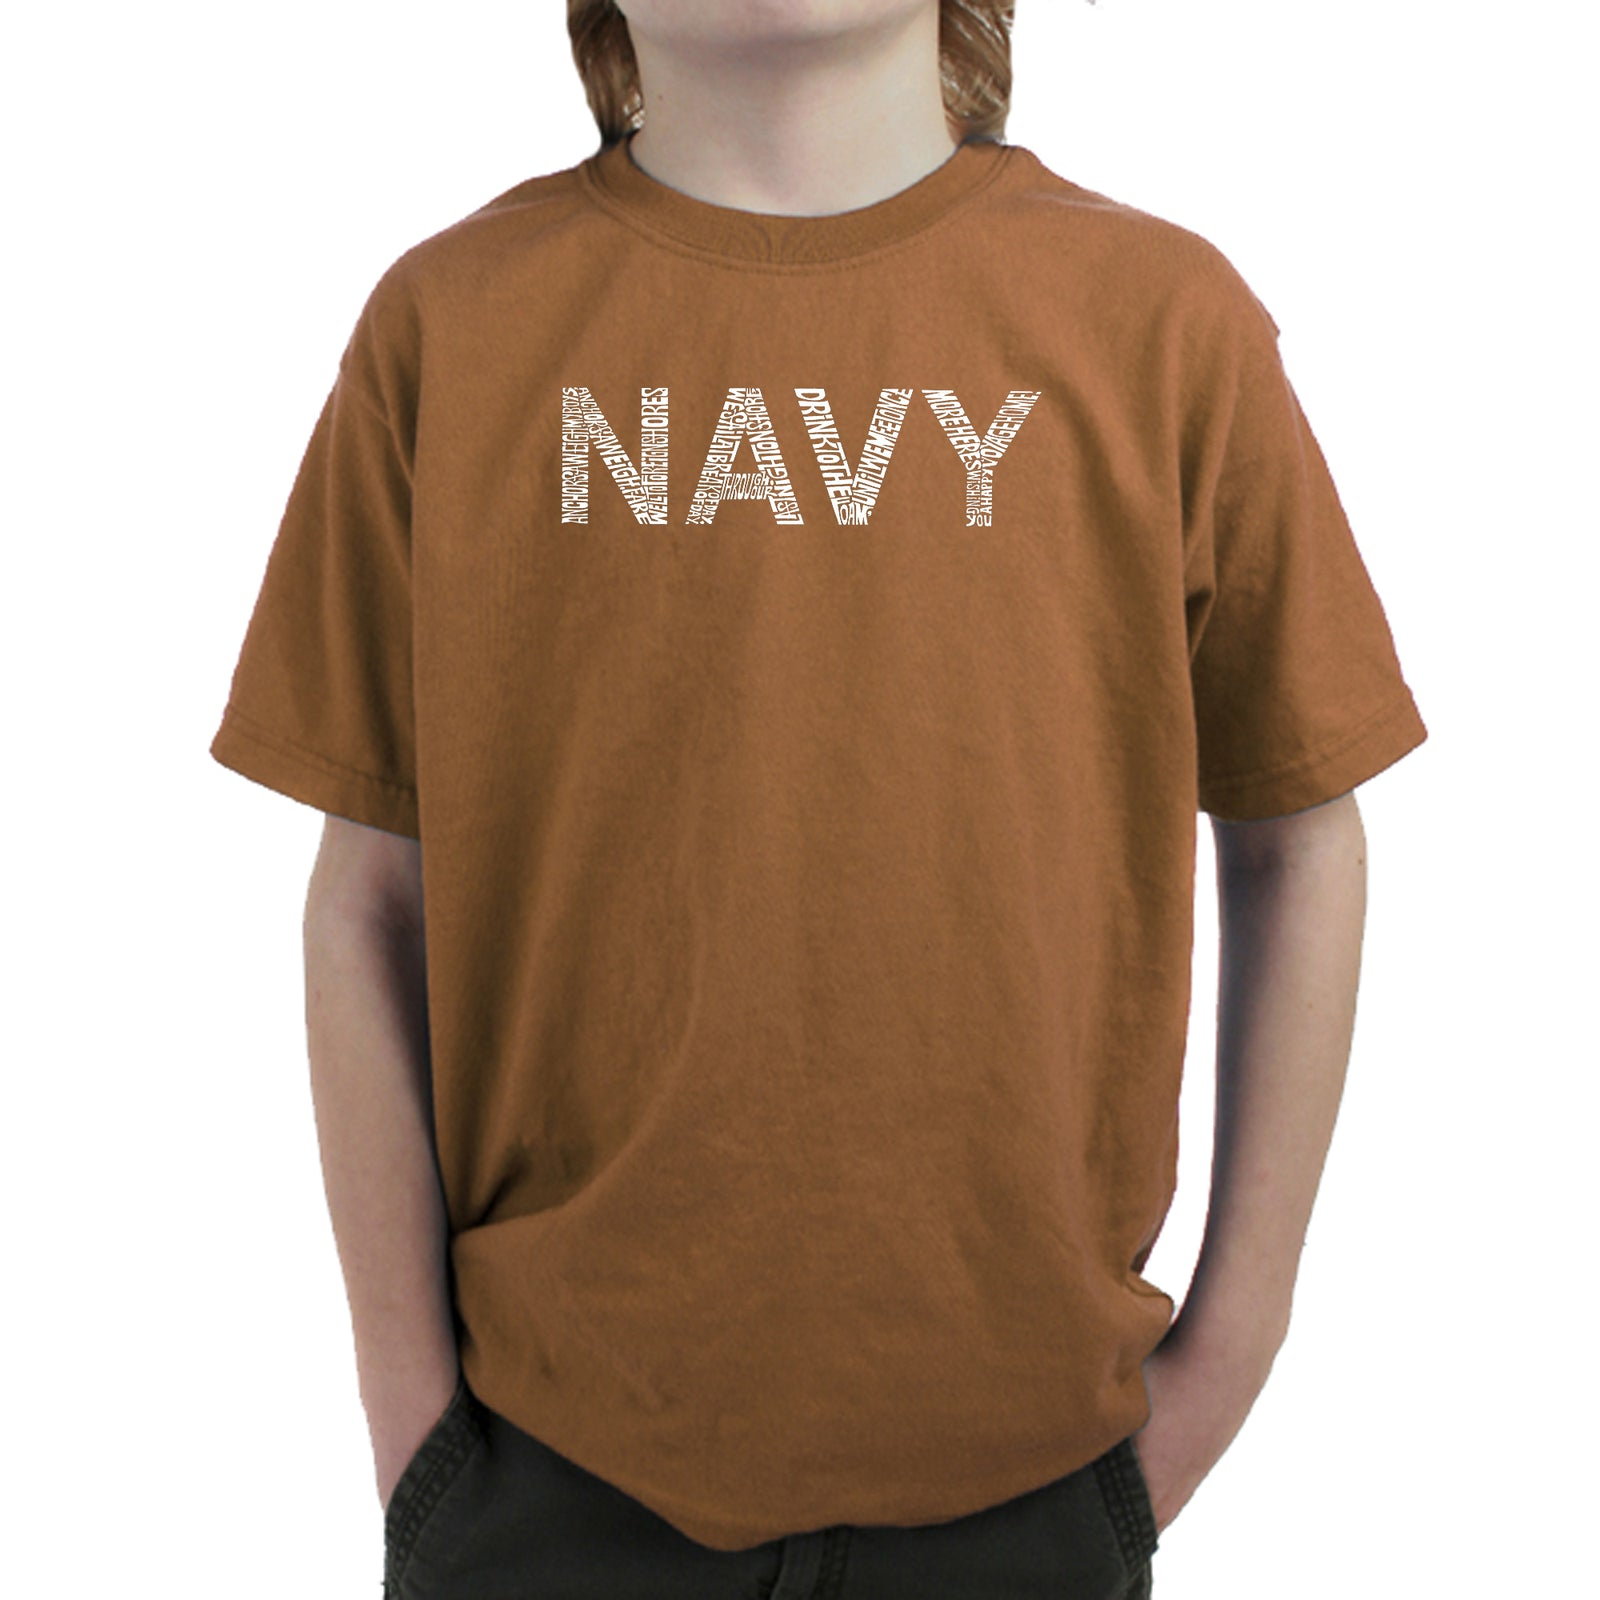 Boy's T-shirt - LYRICS TO ANCHORS AWEIGH